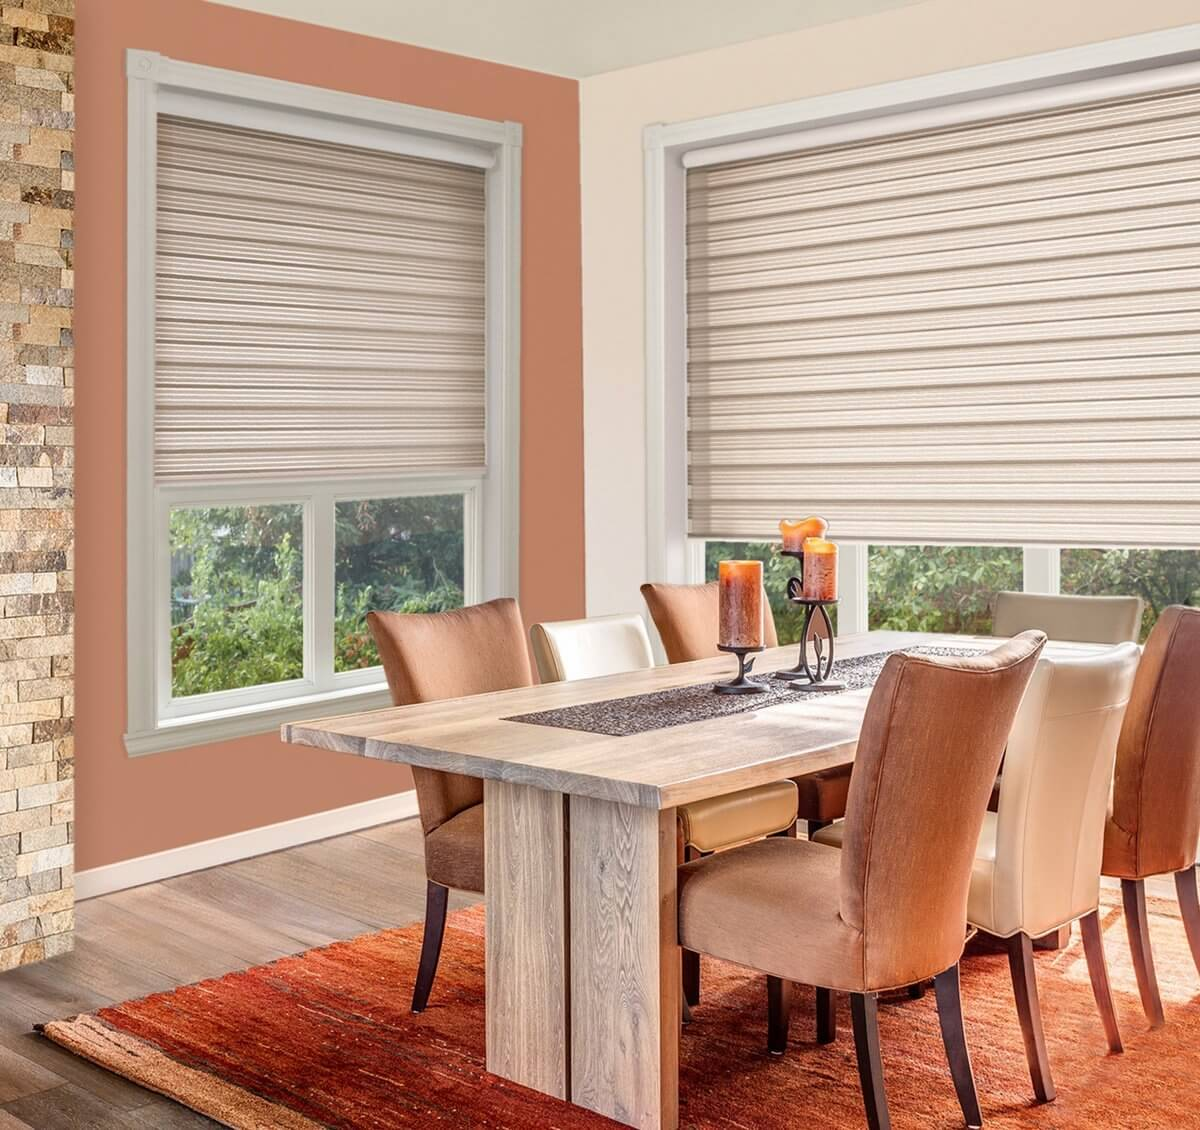 Lunica Light Brown | Vision Blinds